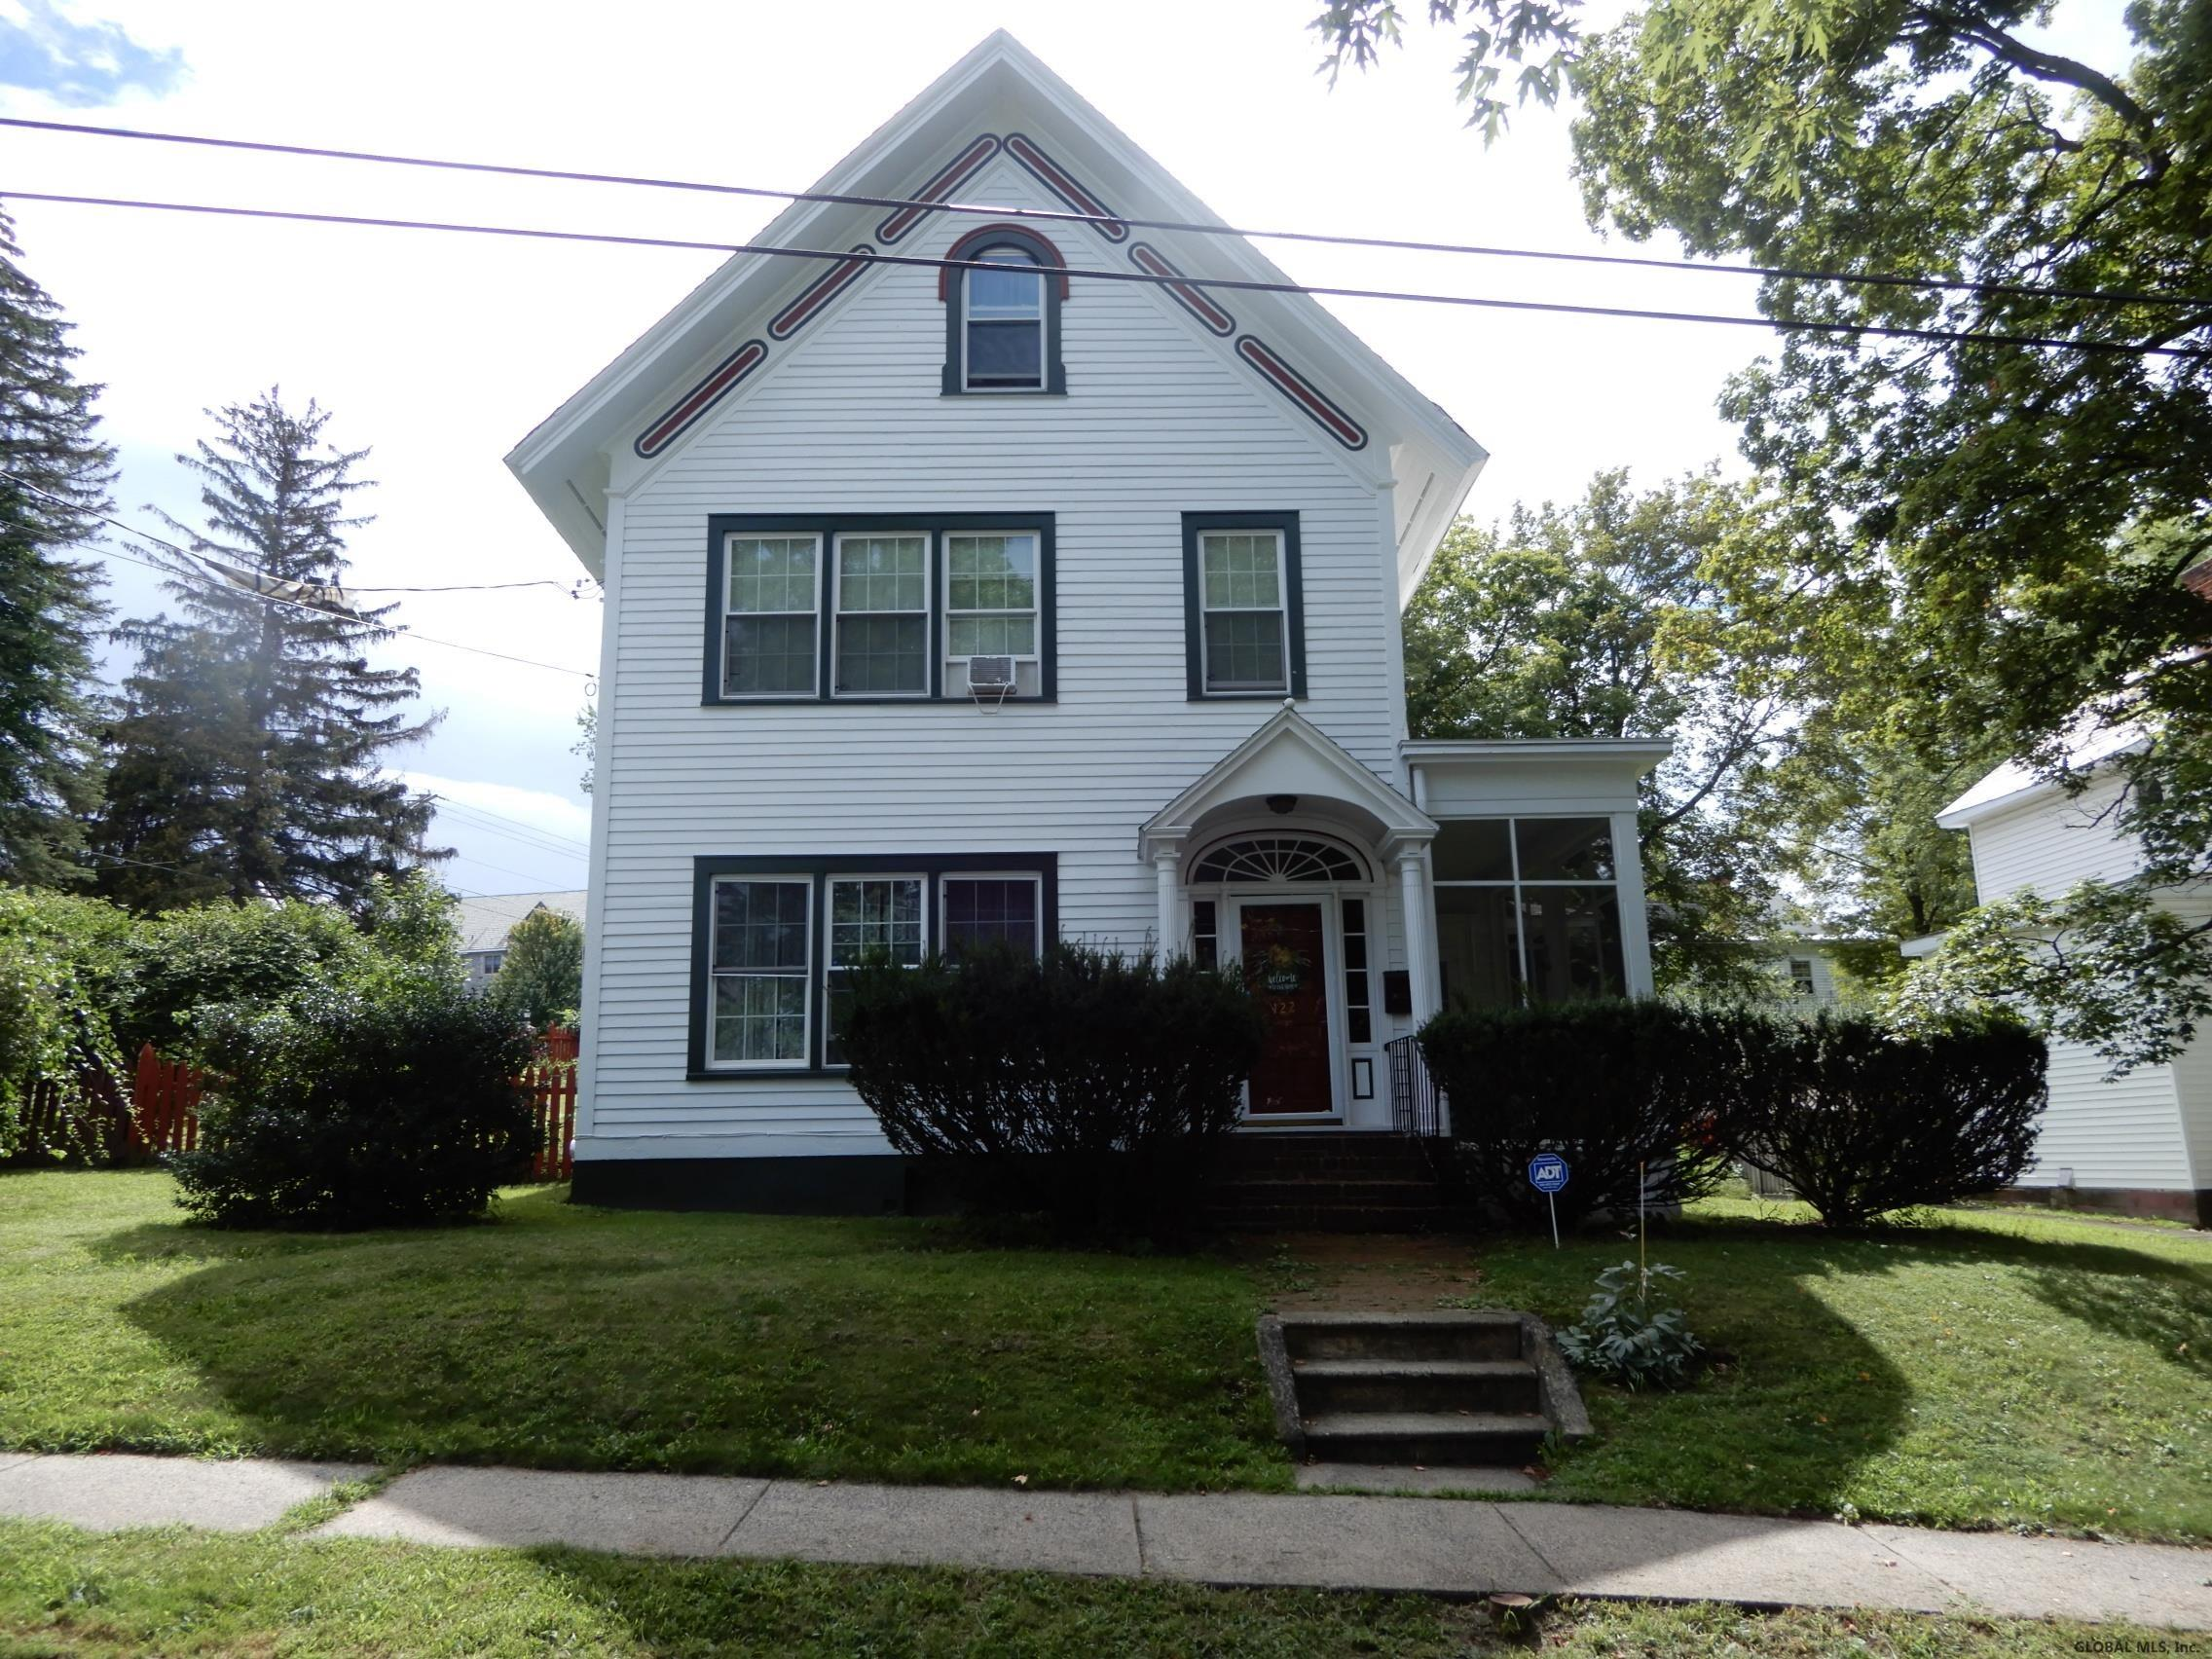 Featured: 122 Maple Ave – Troy, NY